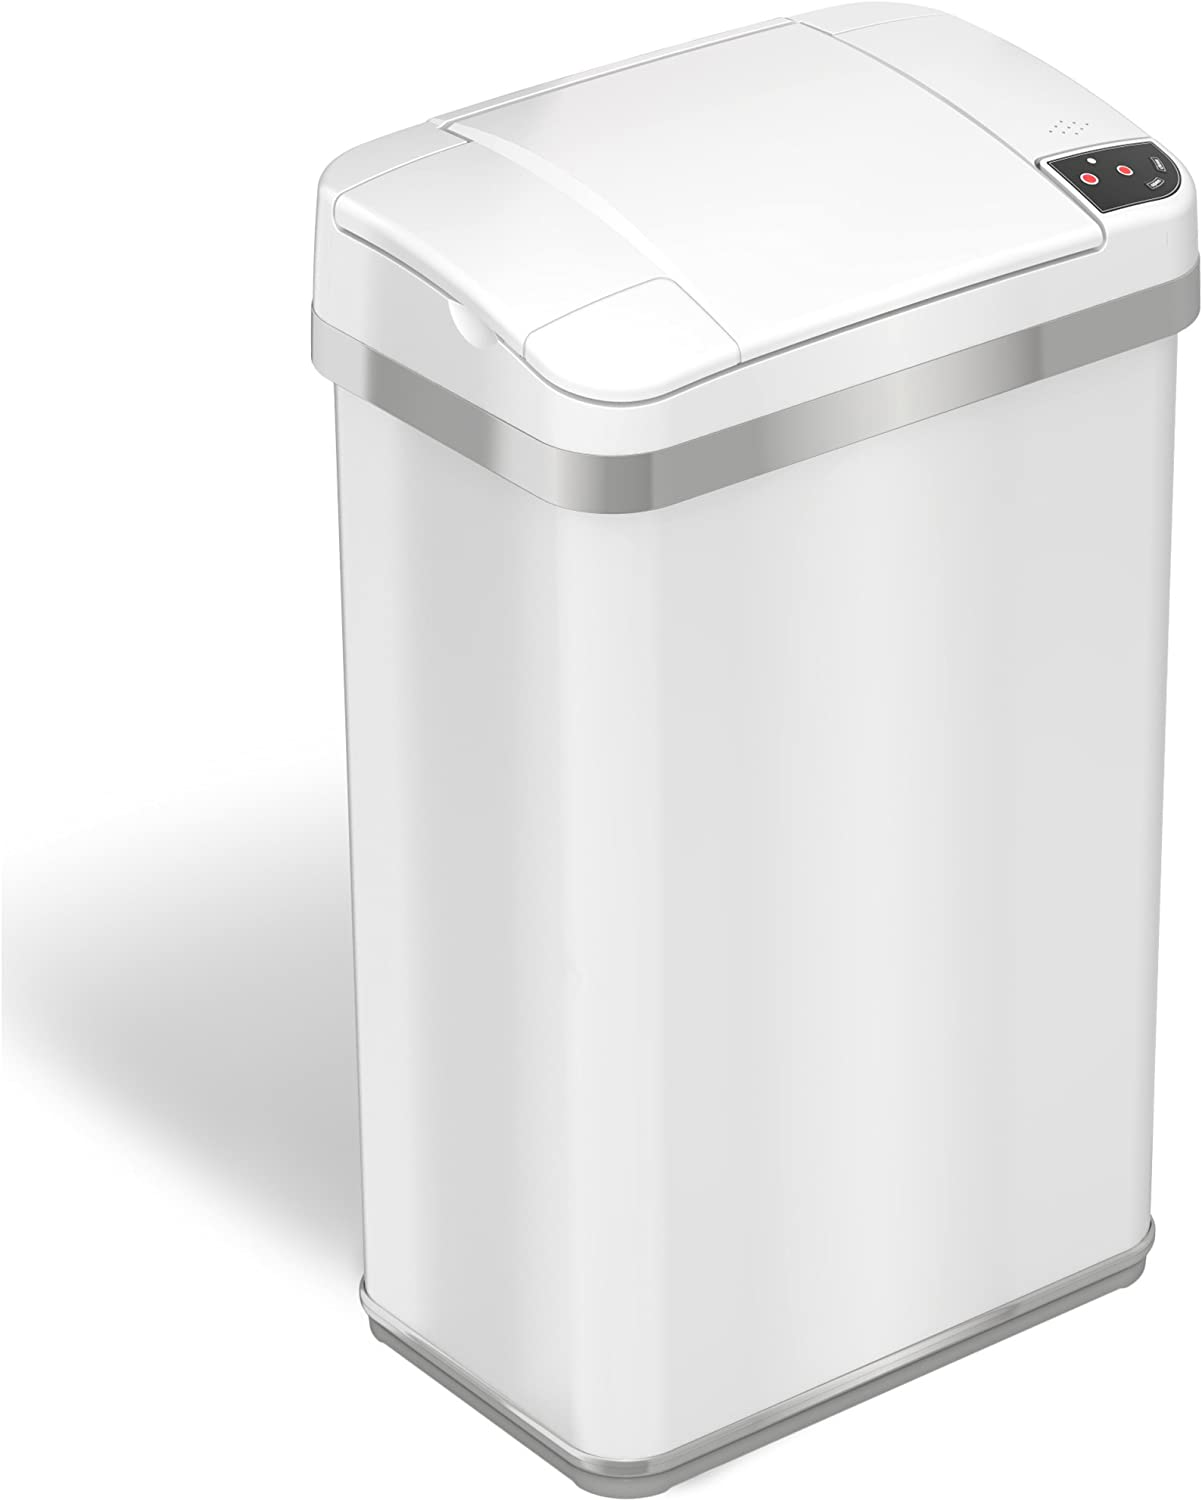 iTouchless AC Power Adapter for Automatic Sensor Trash Cans, Official and Manufacturer Certified, UL Listed, Energy Saving: Home & Kitchen